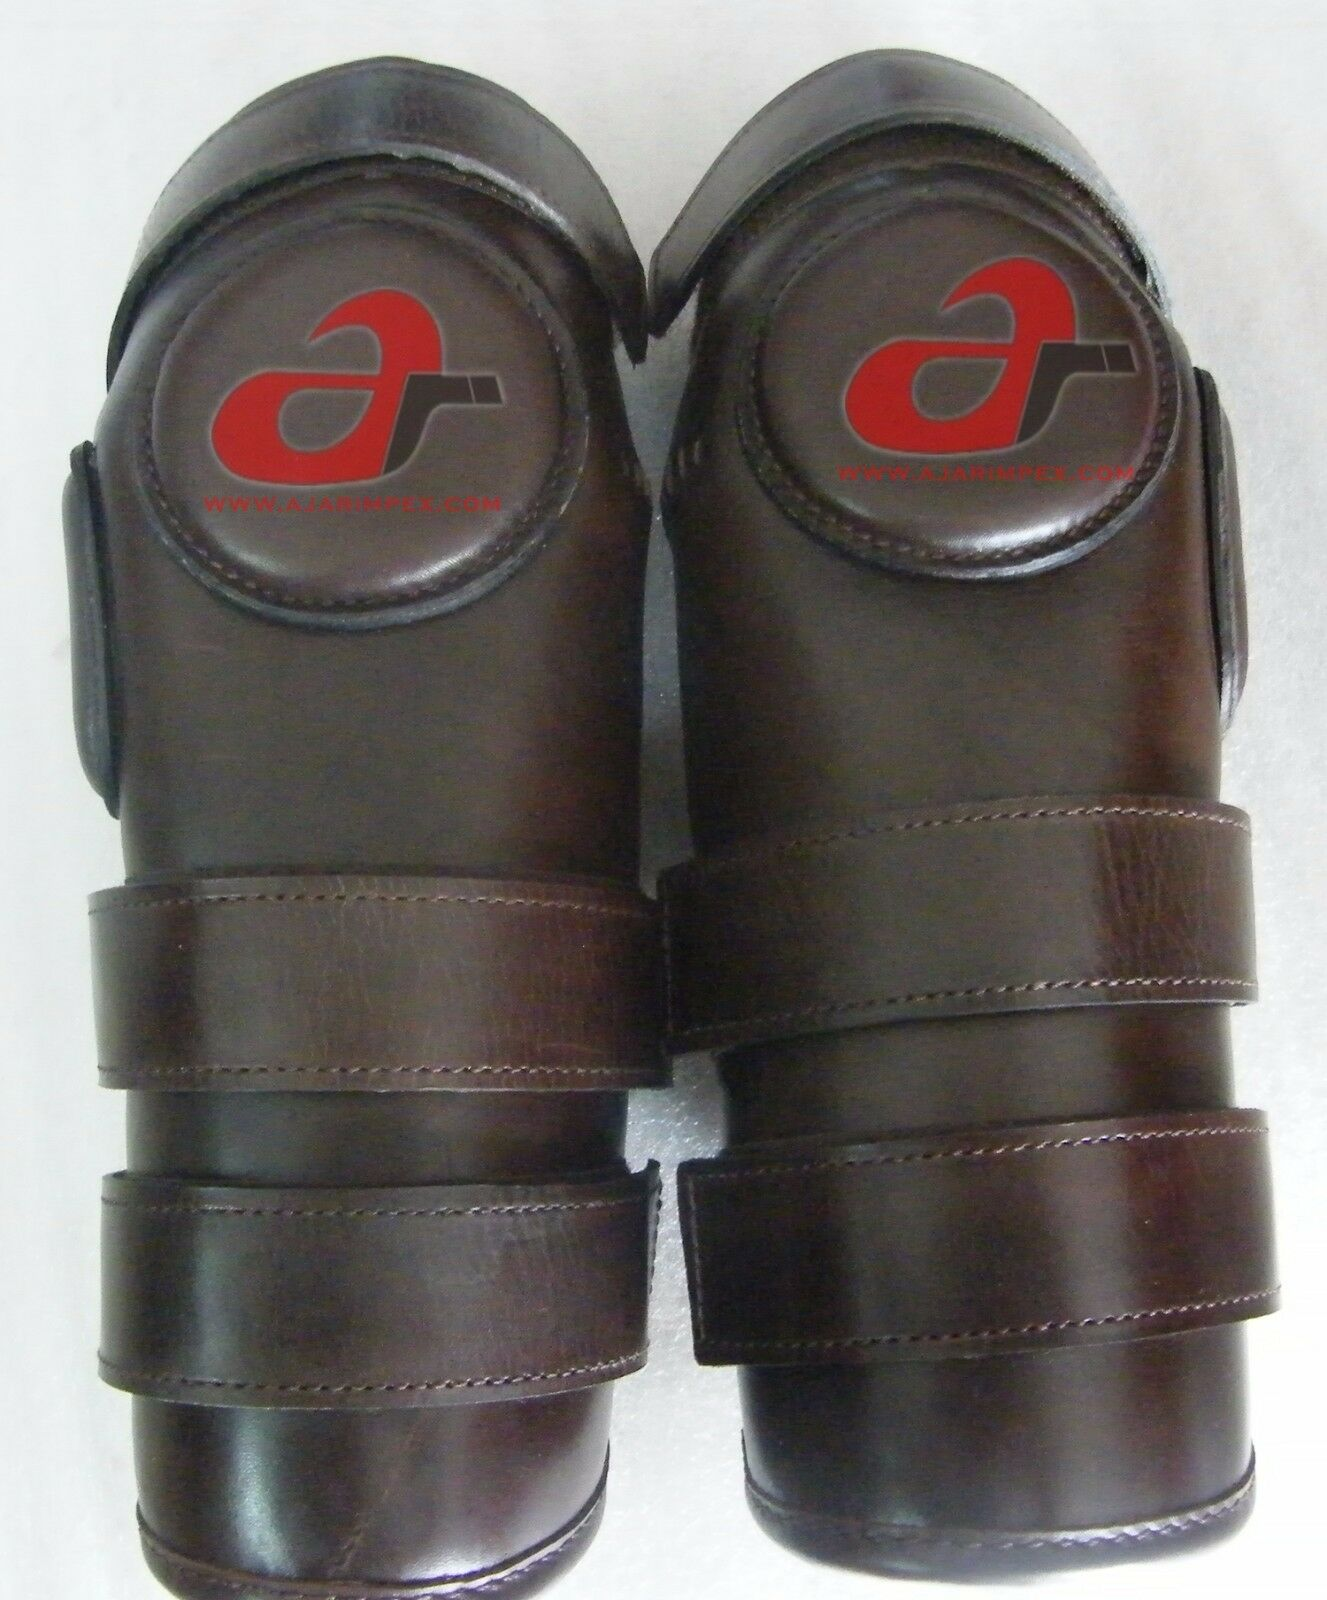 3 Strap Polo & Ridding Knee Guards-Leather and Padded 100% Real Leather